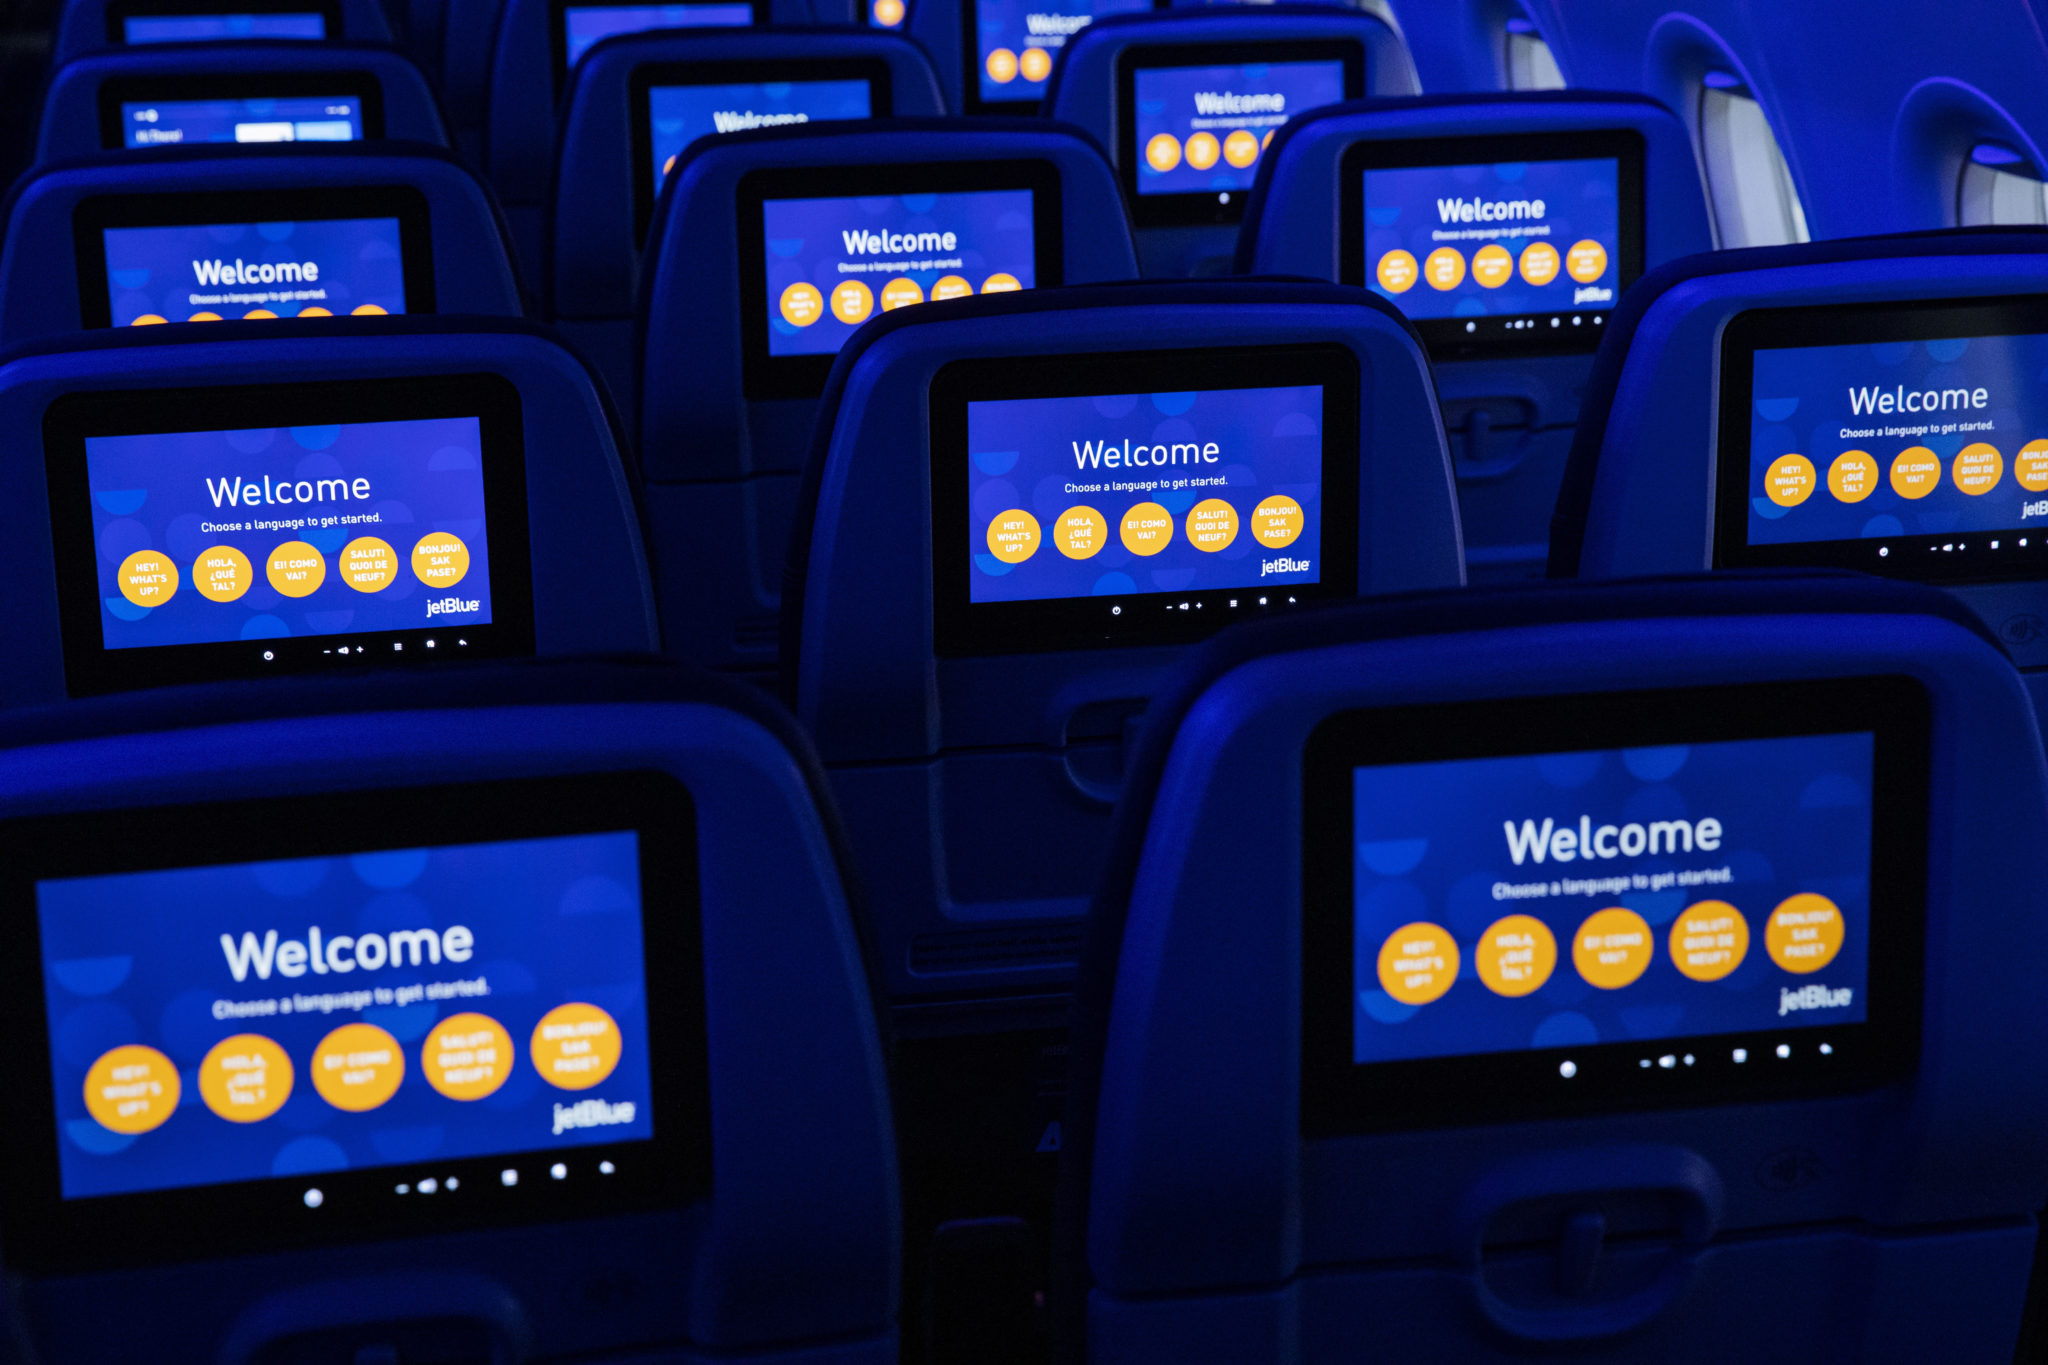 Press Release: JetBlue introduces new Core Experience for